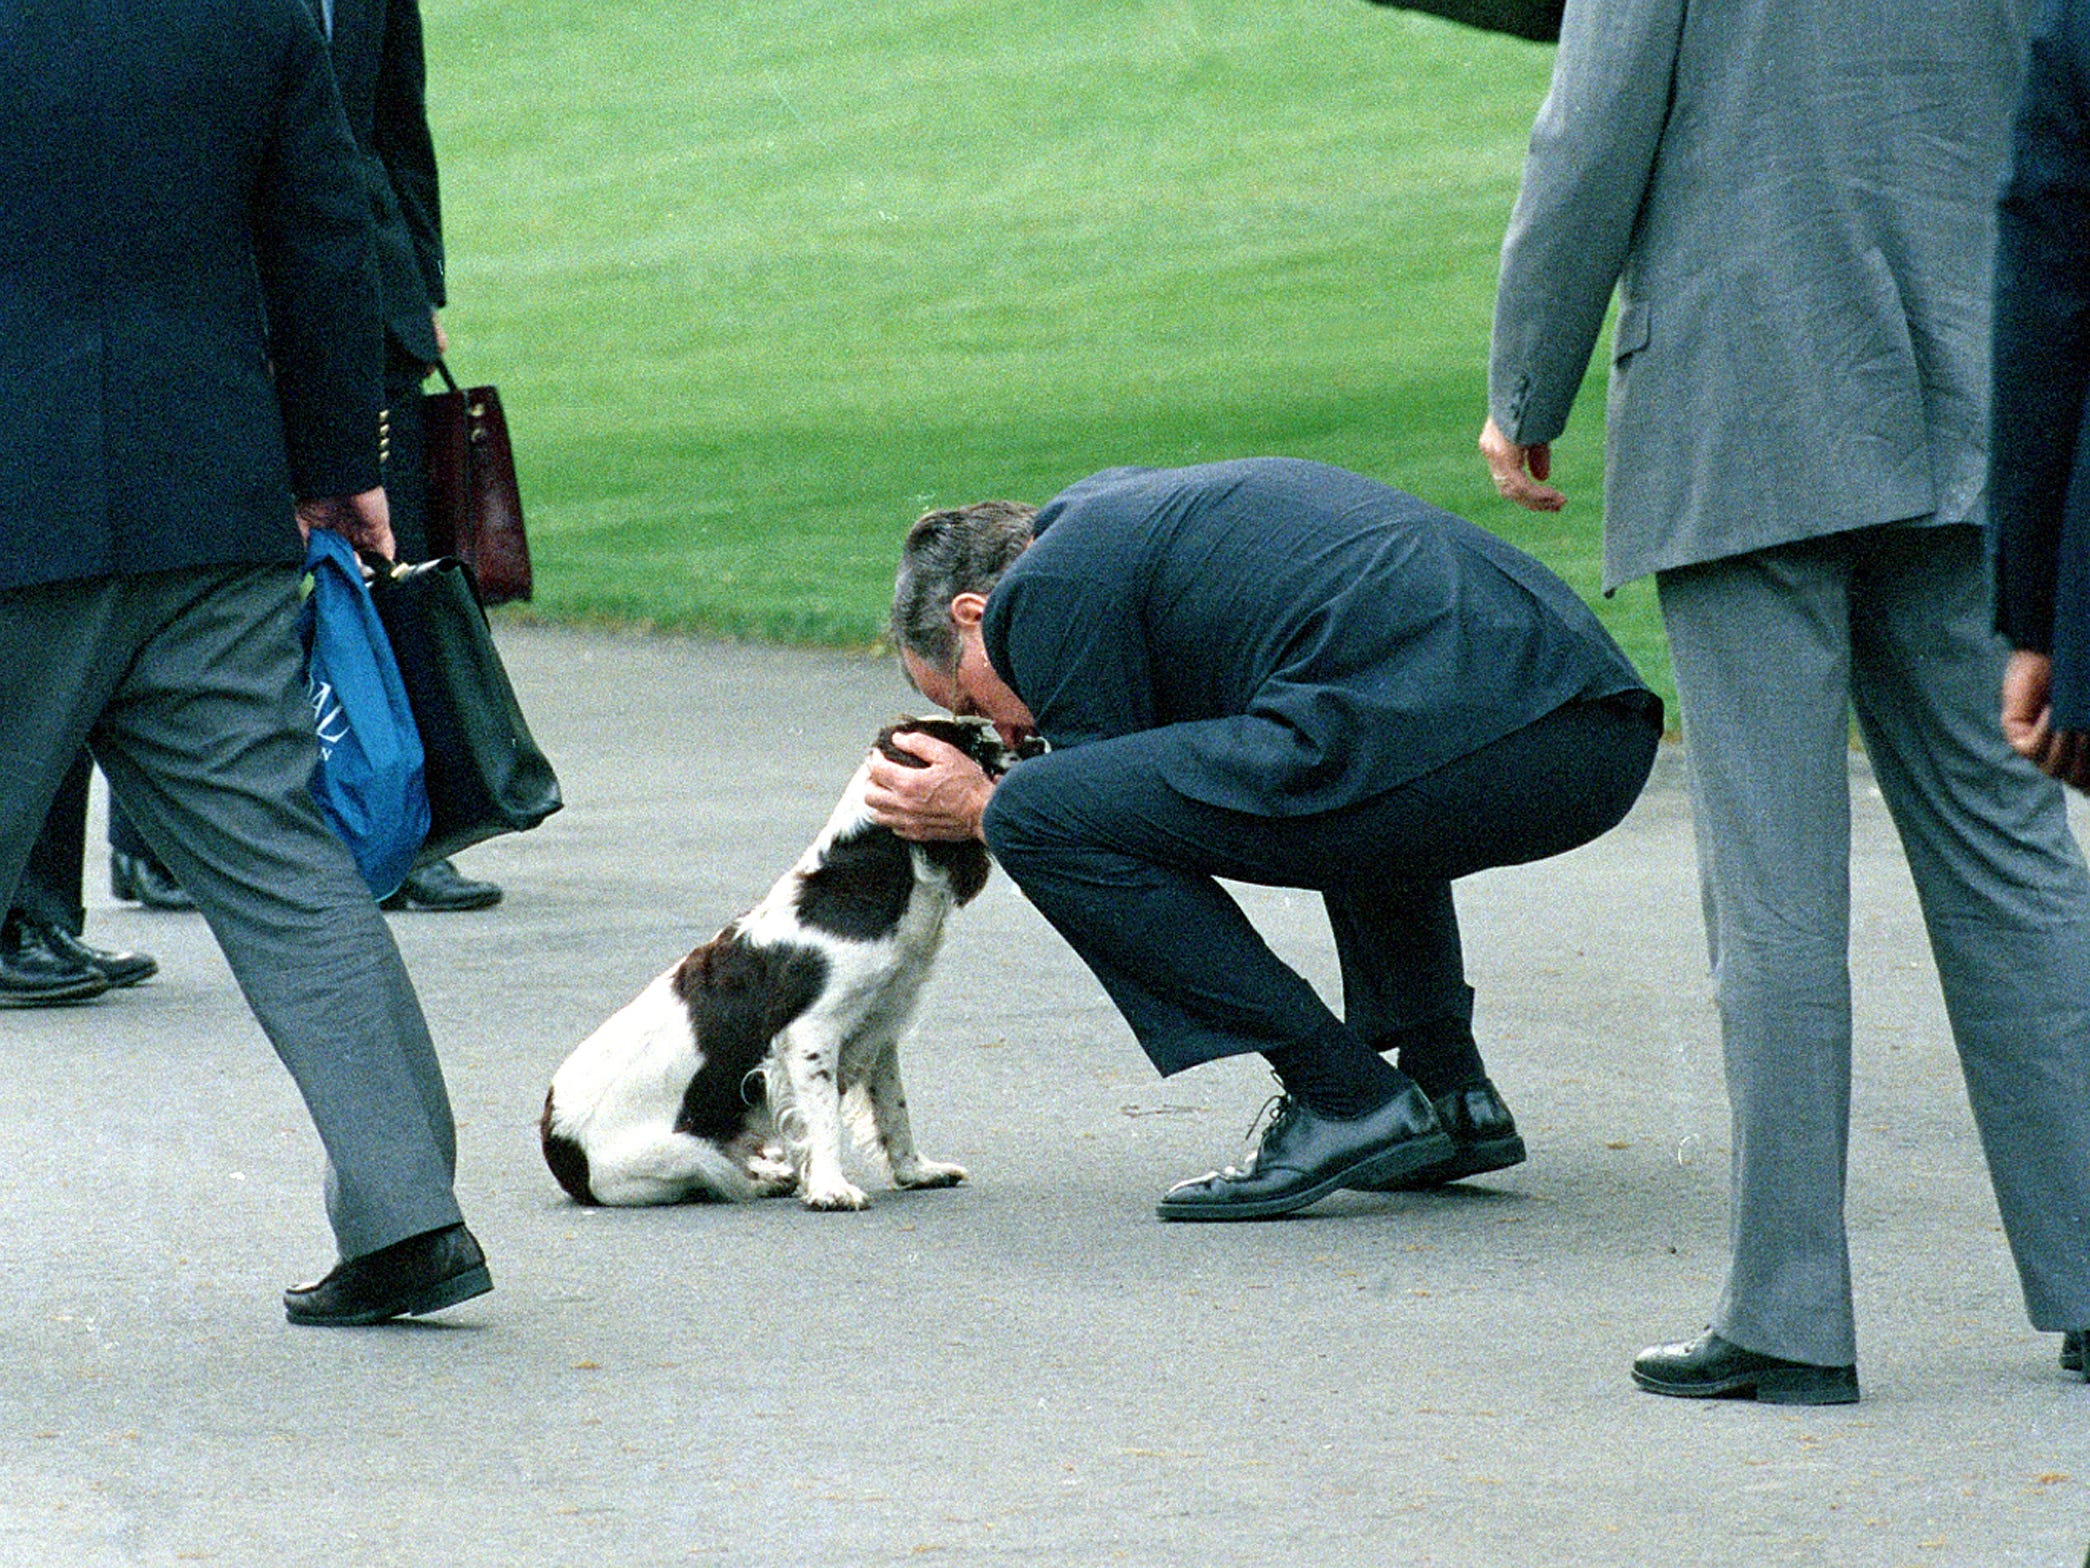 U.S. President George Bush kneels to greet his dog, Millie, upon arriving back from a four-day cross country trip at the White House in Washington, D.C., Thursday, April 27, 1989.  (AP Photo/Doug Mills)